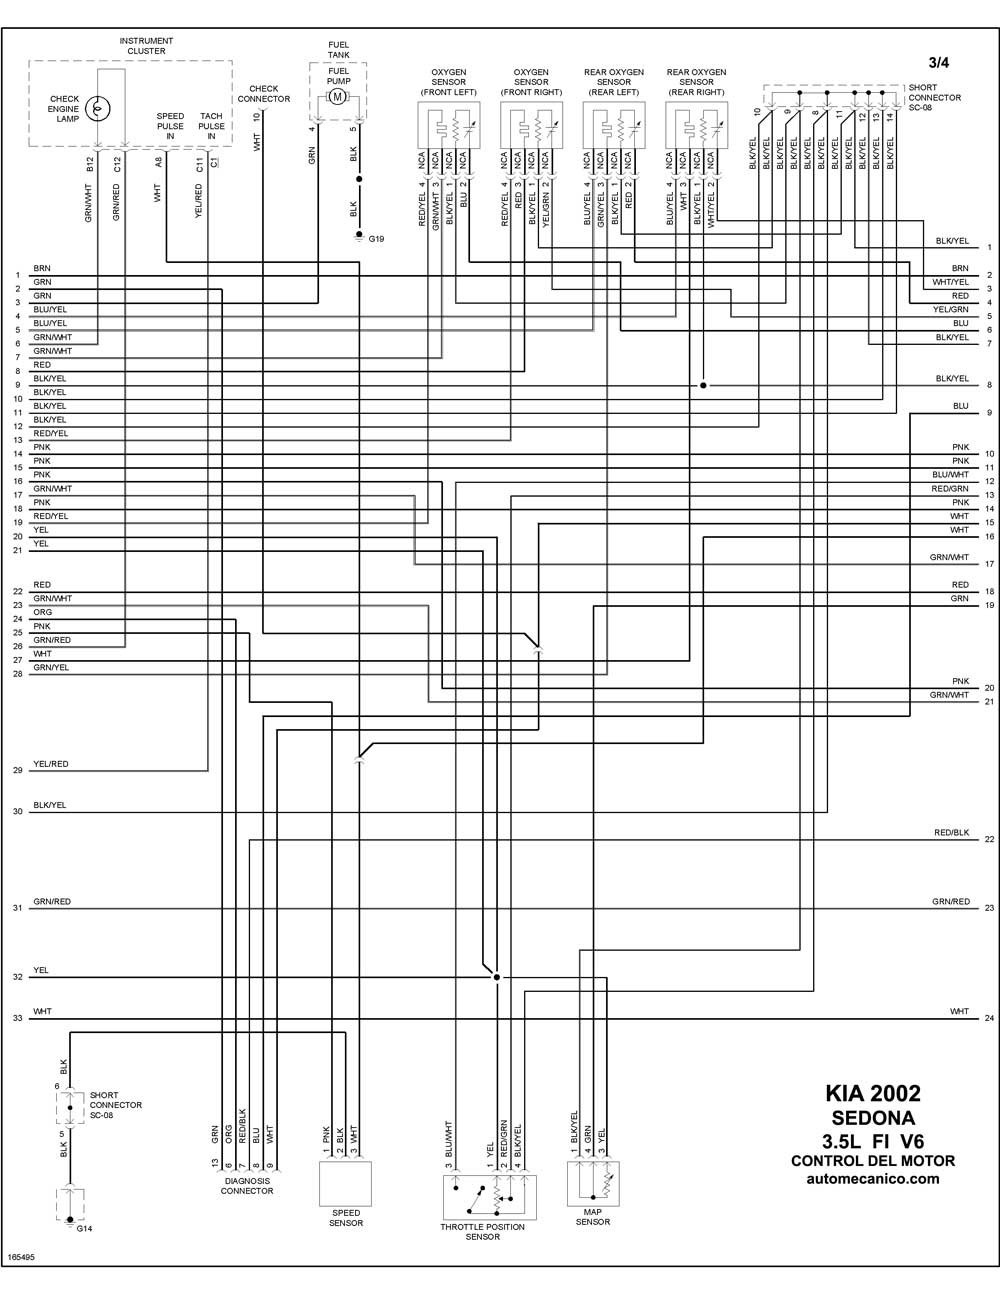 1998 Kia Mentor Wiring Diagram Auto Electrical Gmc T7500 Related With